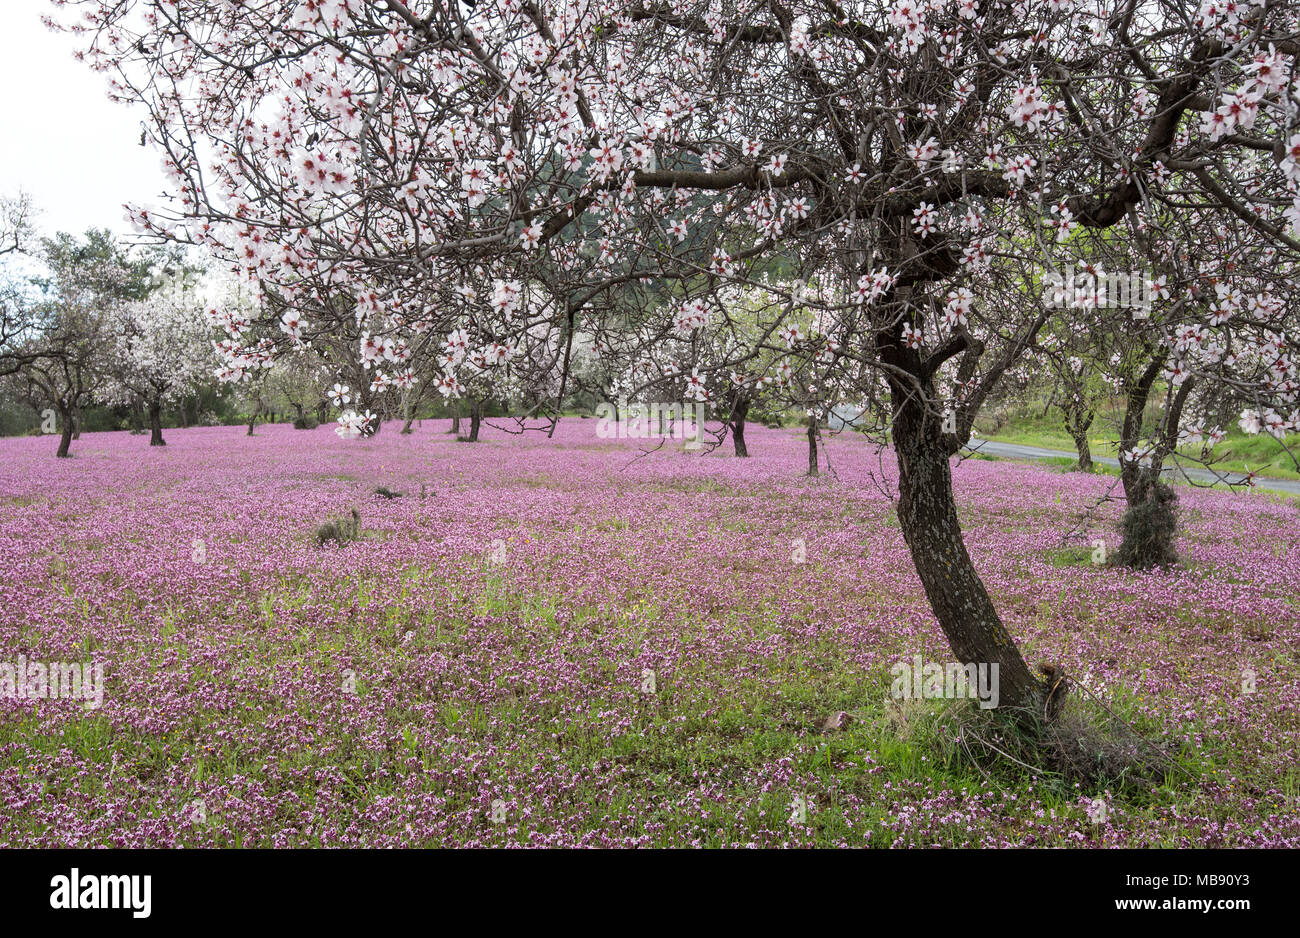 Beautiful Field With Almond Trees Full Of White Blossoms And Purple